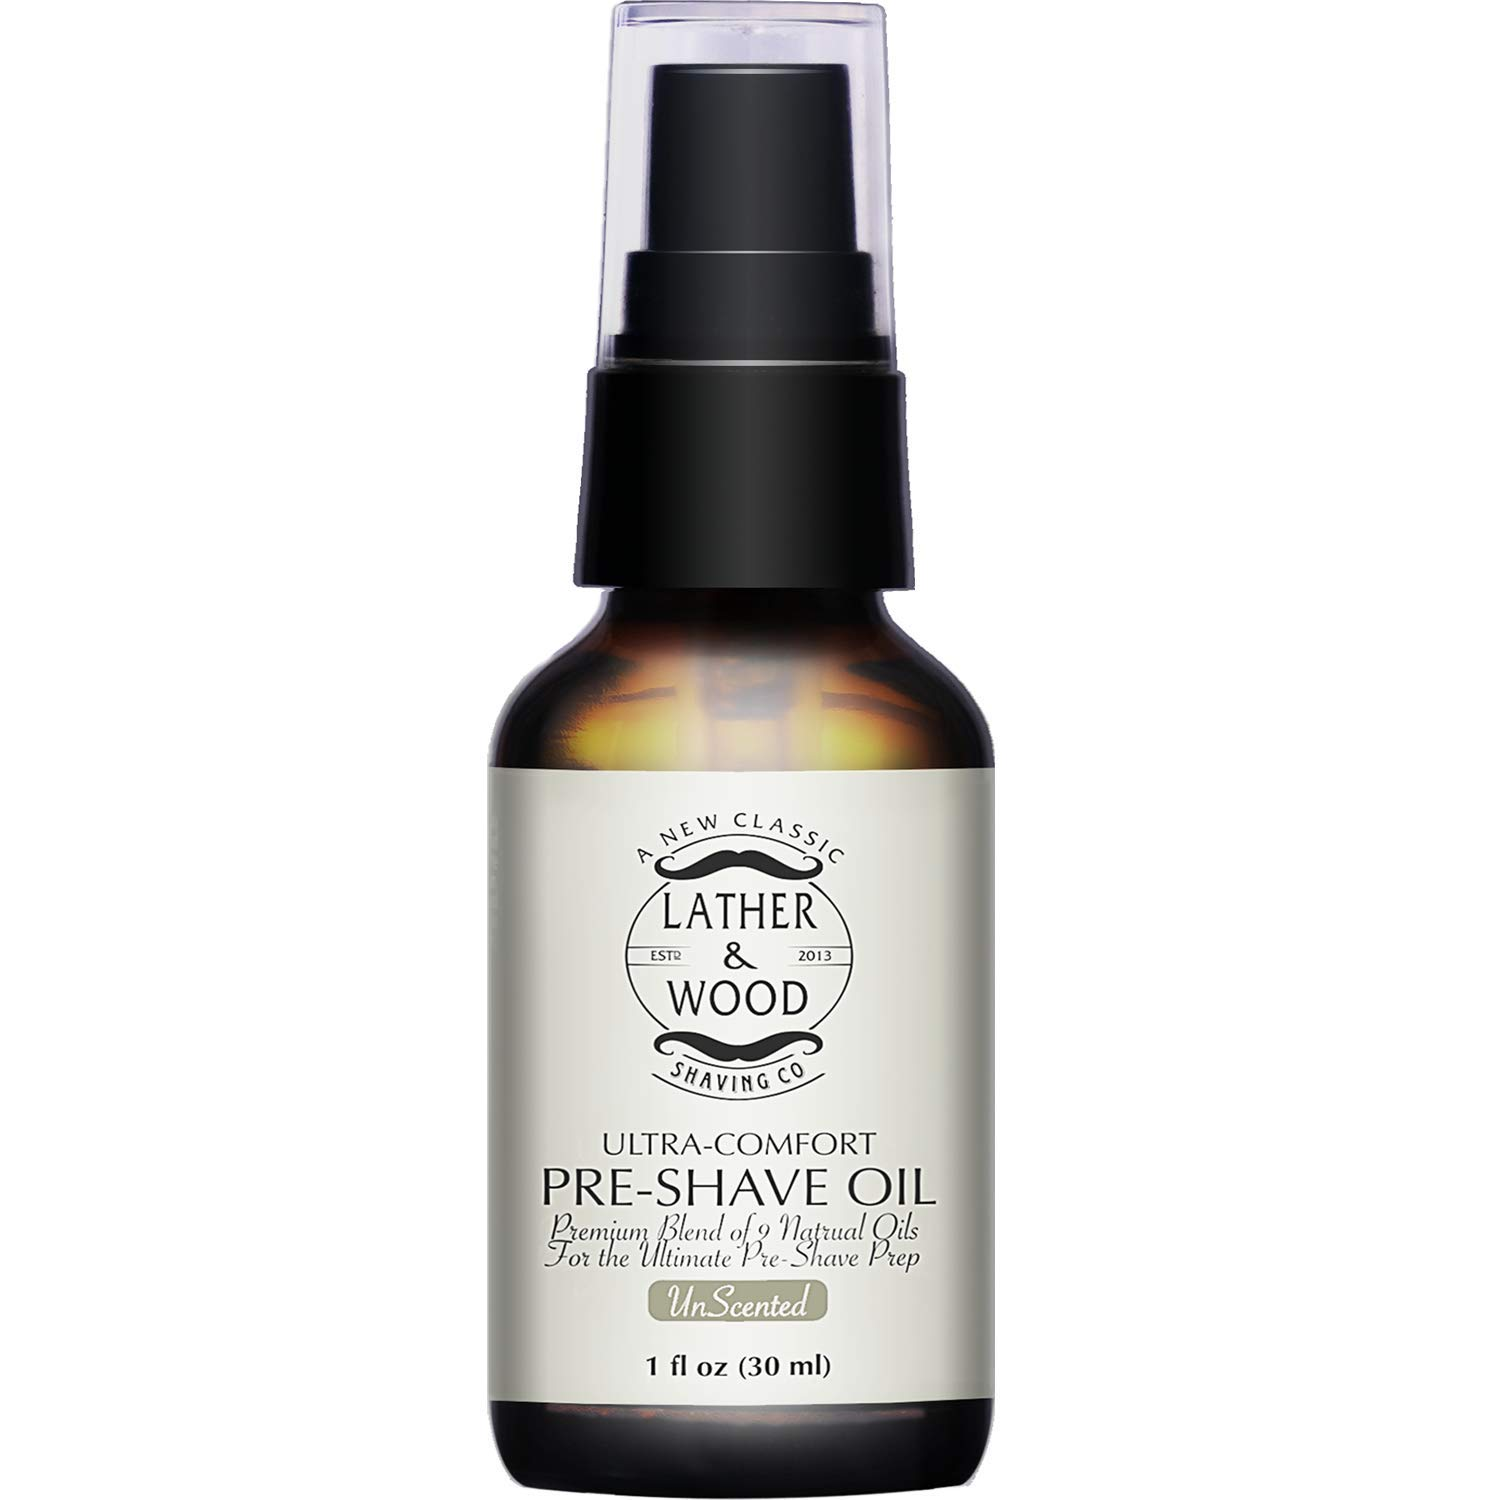 Lather & Wood Shaving Unscented Pre-Shave Oil - 1